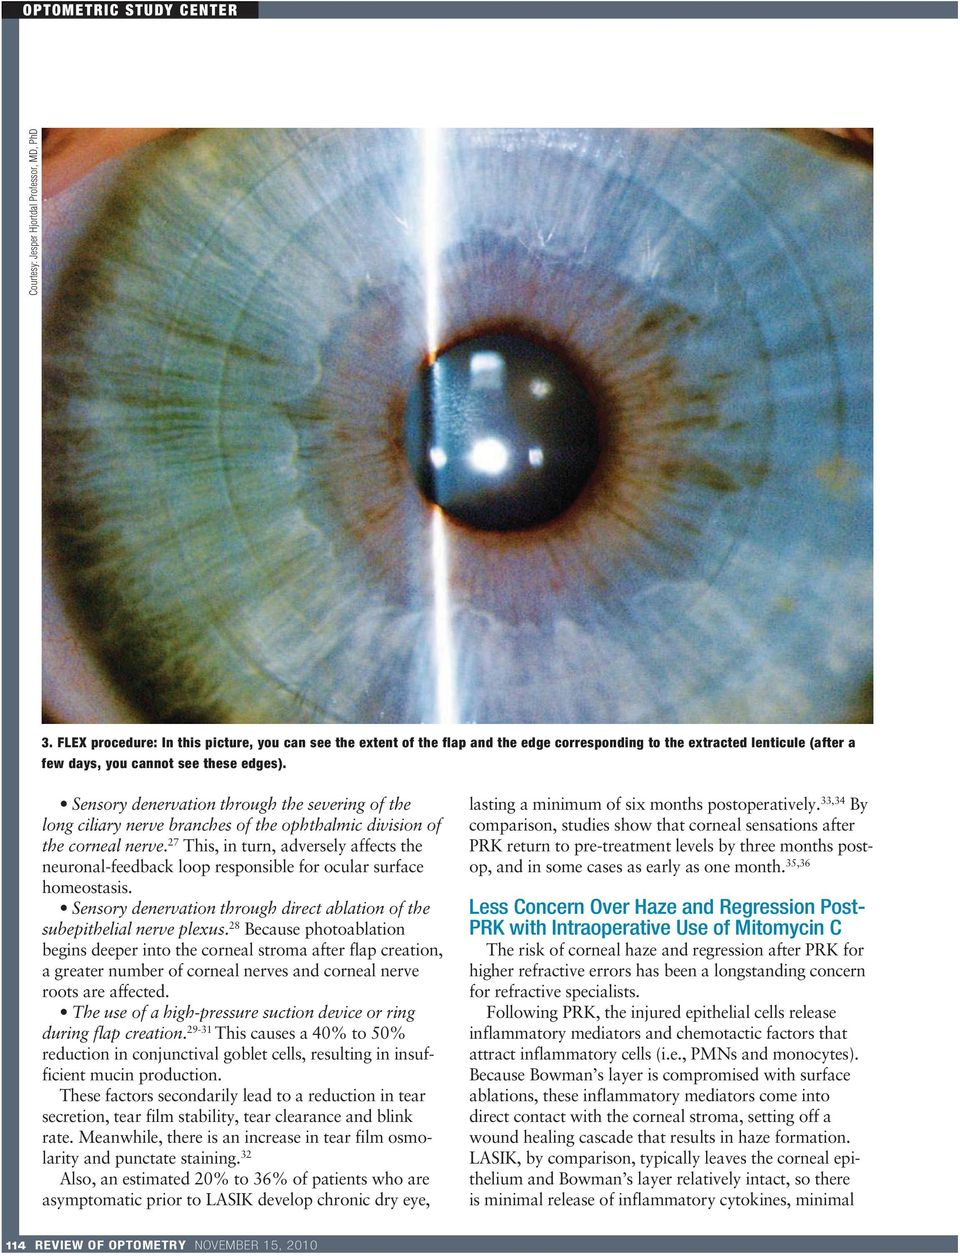 Sensory denervation through the severing of the long ciliary nerve branches of the ophthalmic division of the corneal nerve.